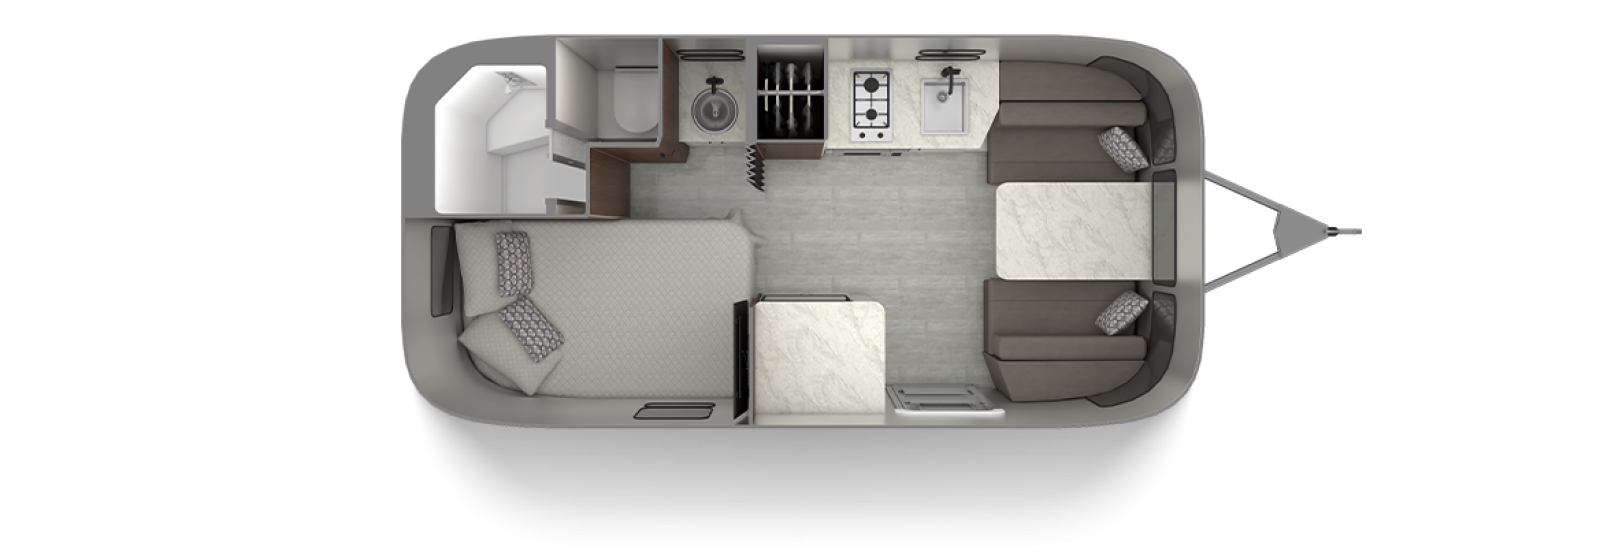 Caravel 19CB Floor Plan